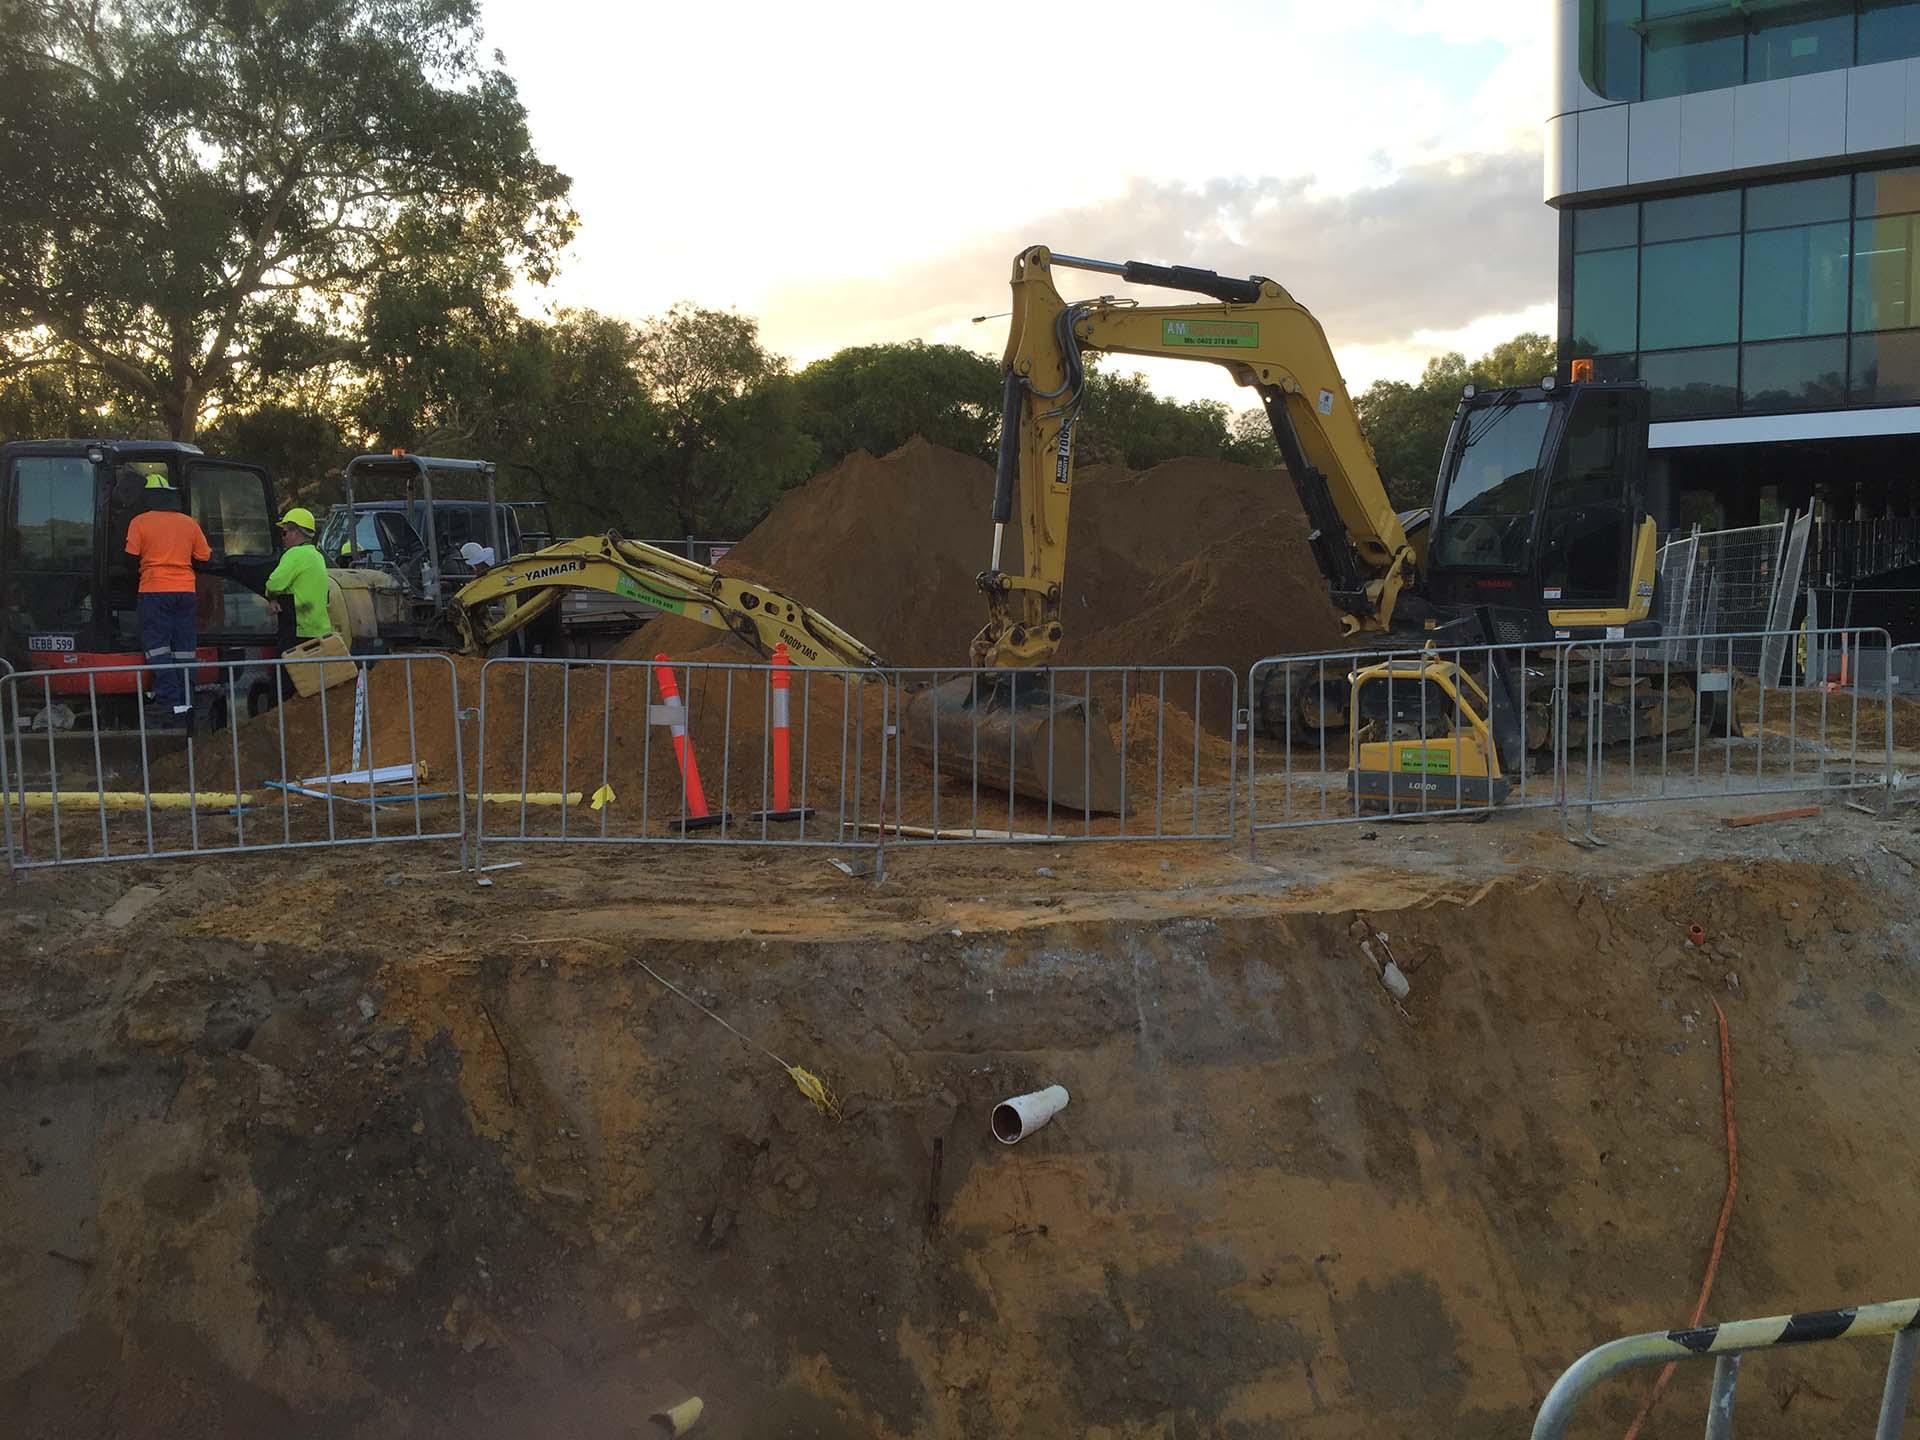 joondalup health campus a.m. earthmoving